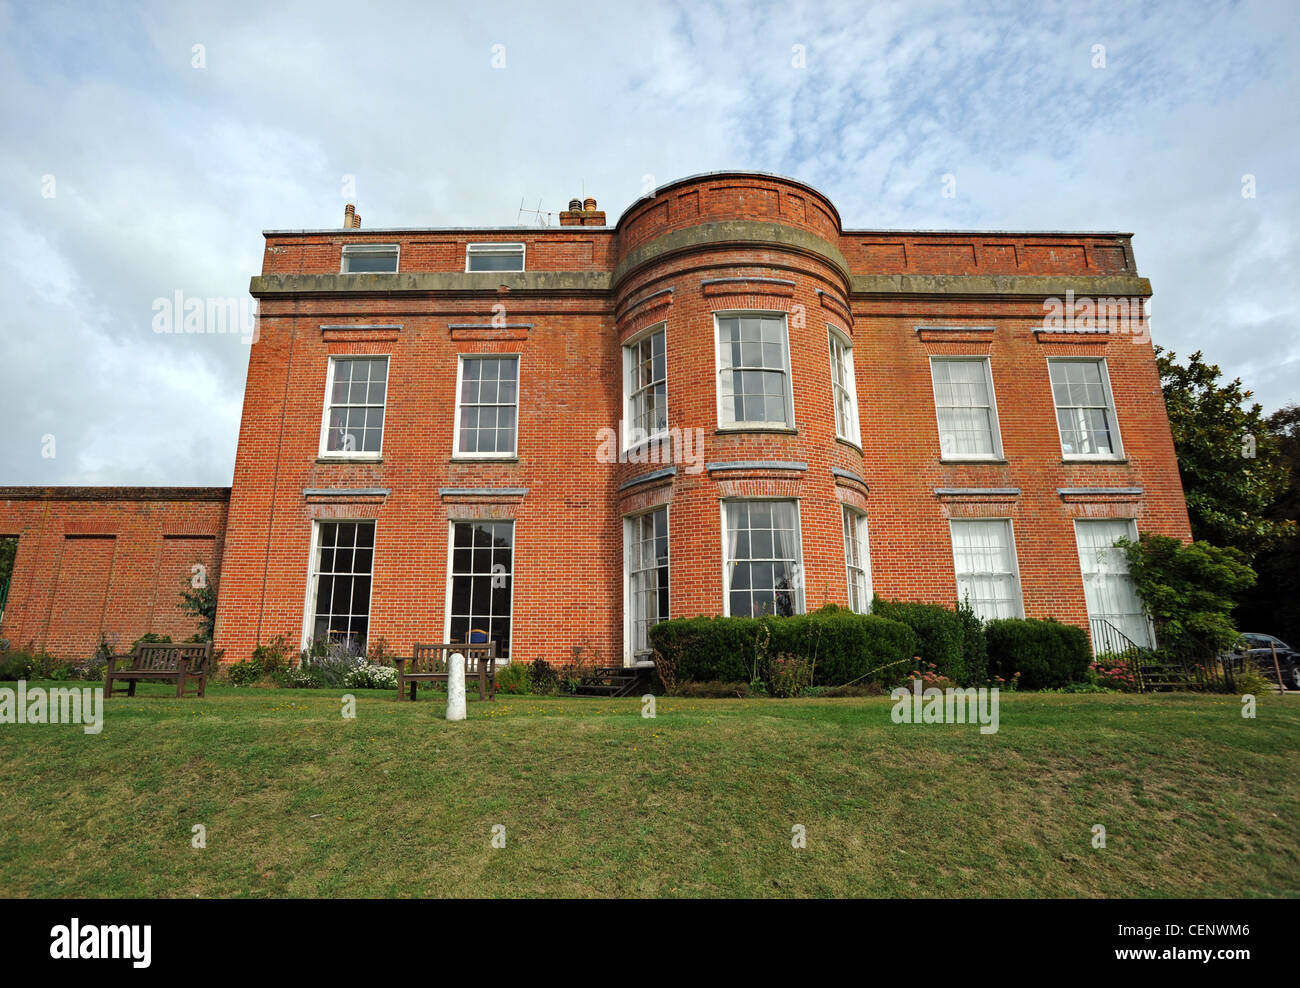 Goring Hall  in Bodium Avenue Goring, former home of the Queen Mother's family and now a BMI private hospital - Stock Image